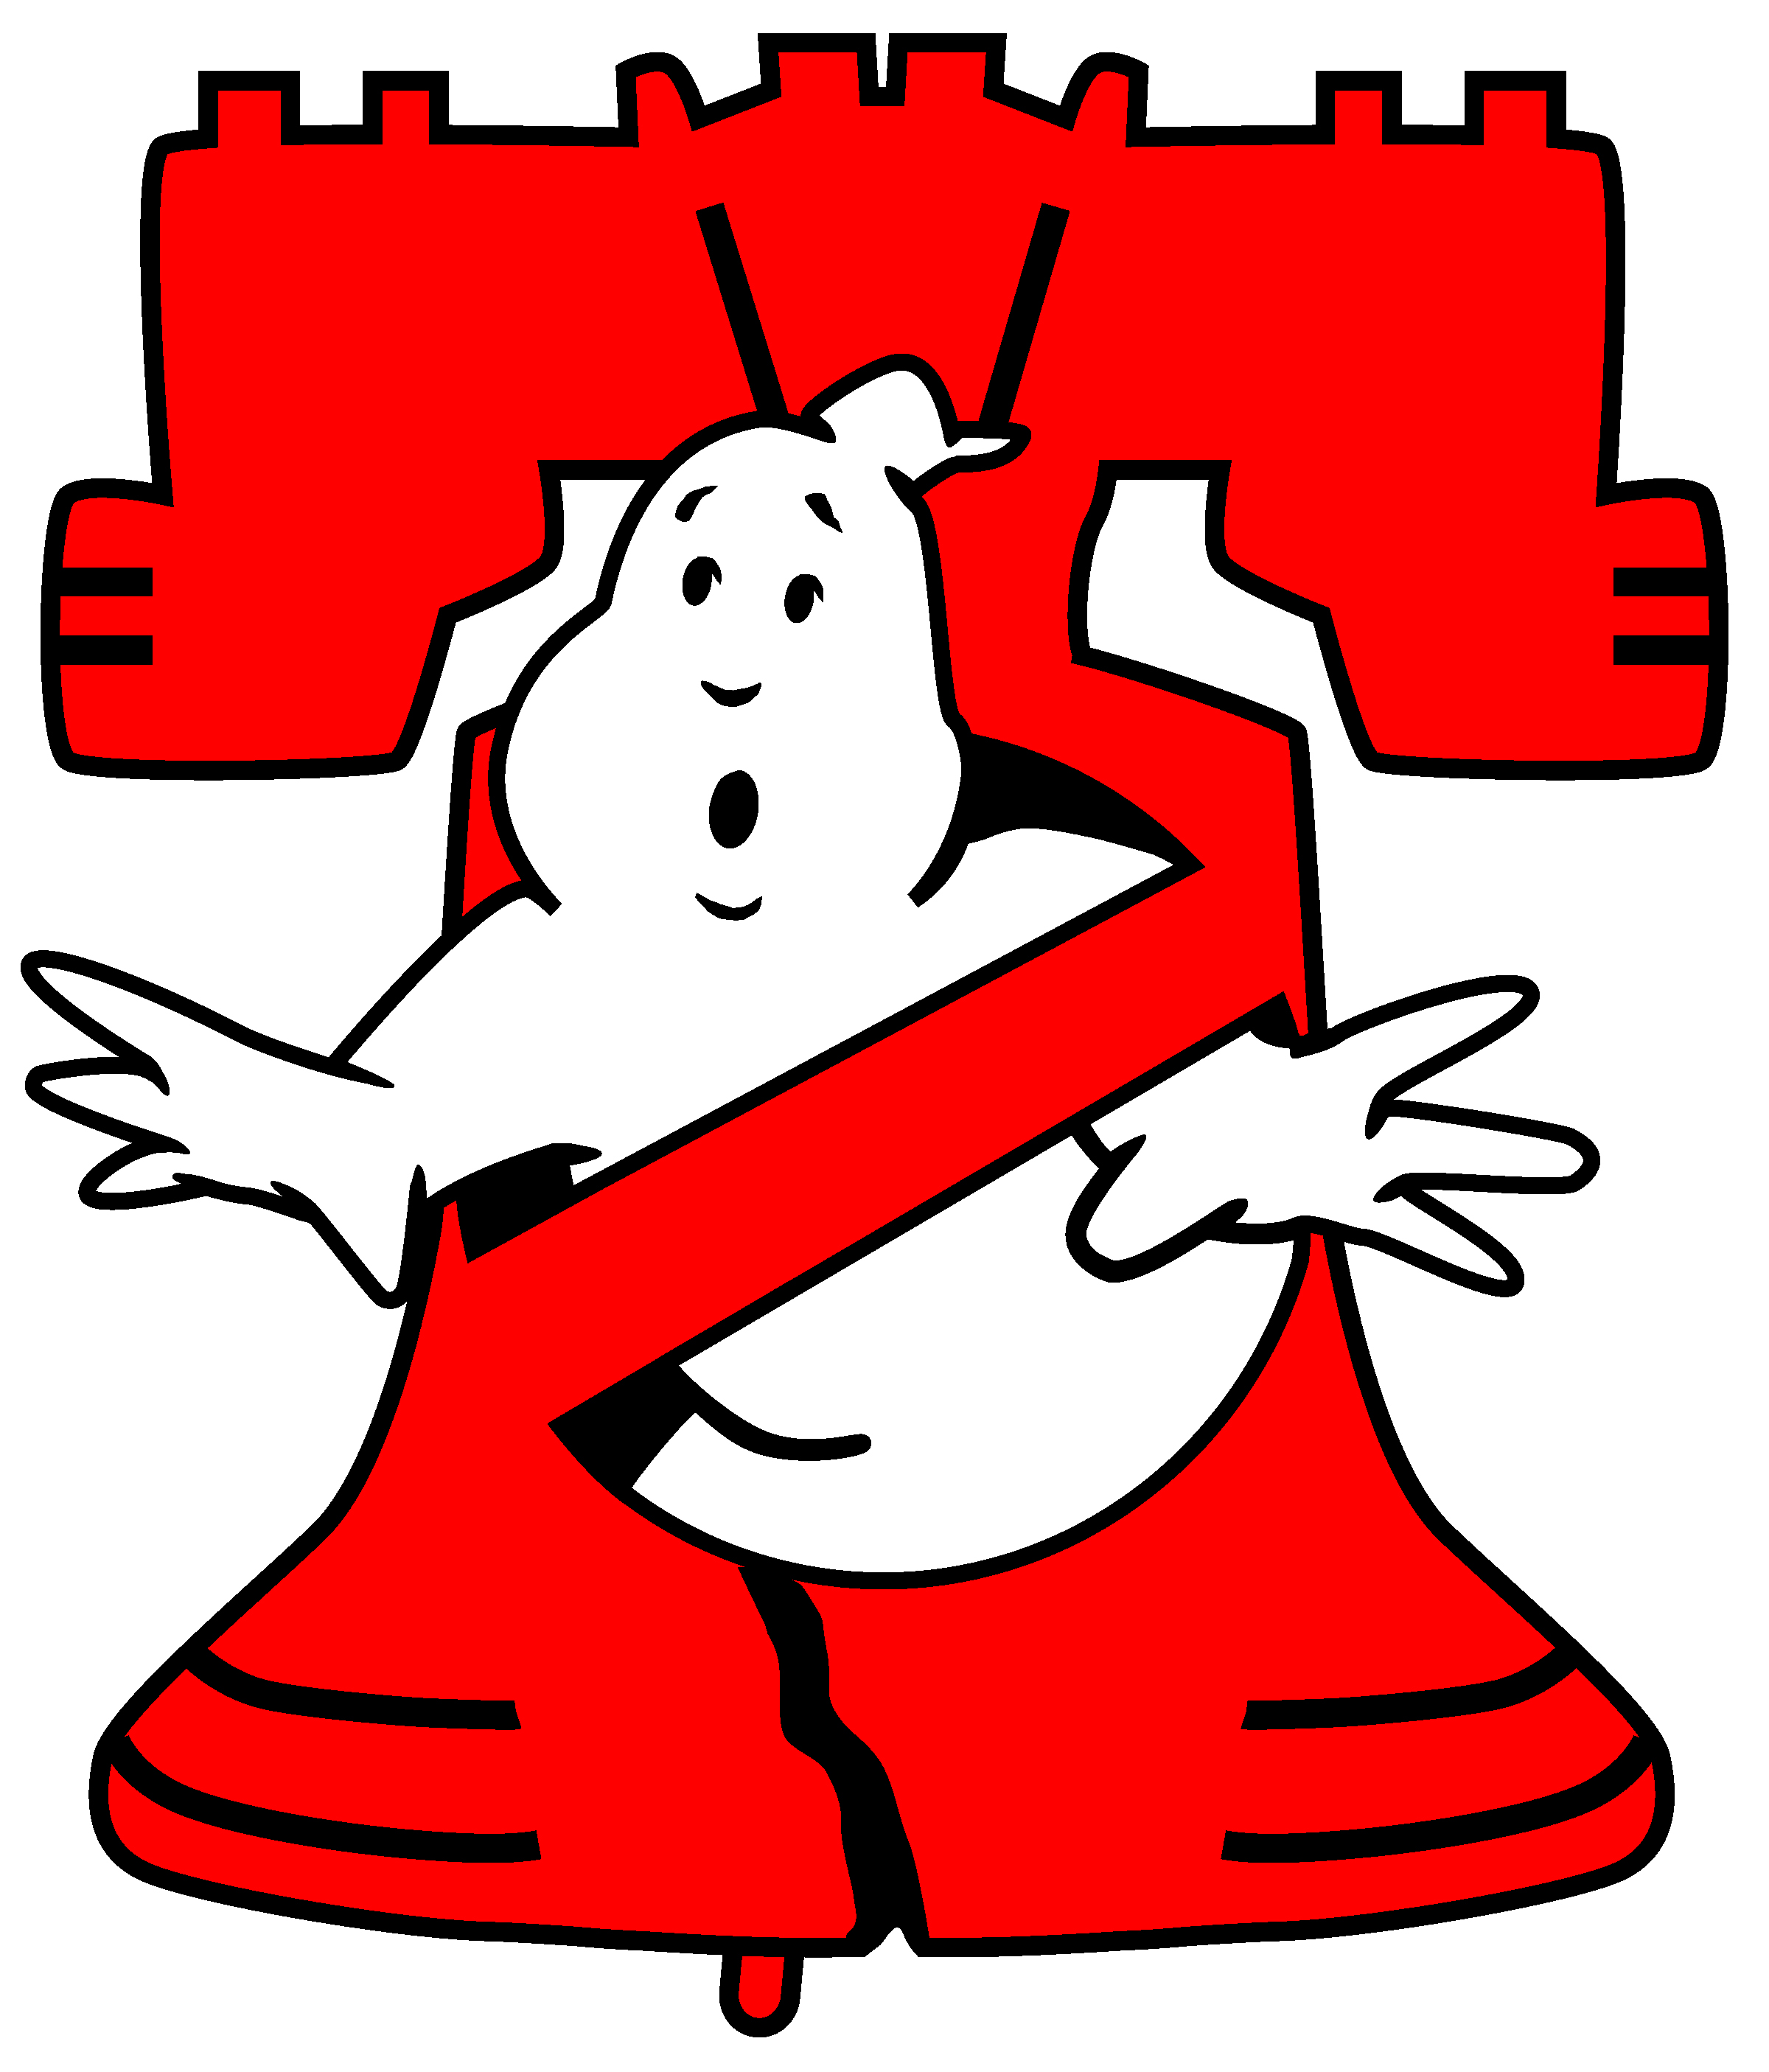 Ghostbusters clipart Clipart Ghost With Ghost Ghostbusters